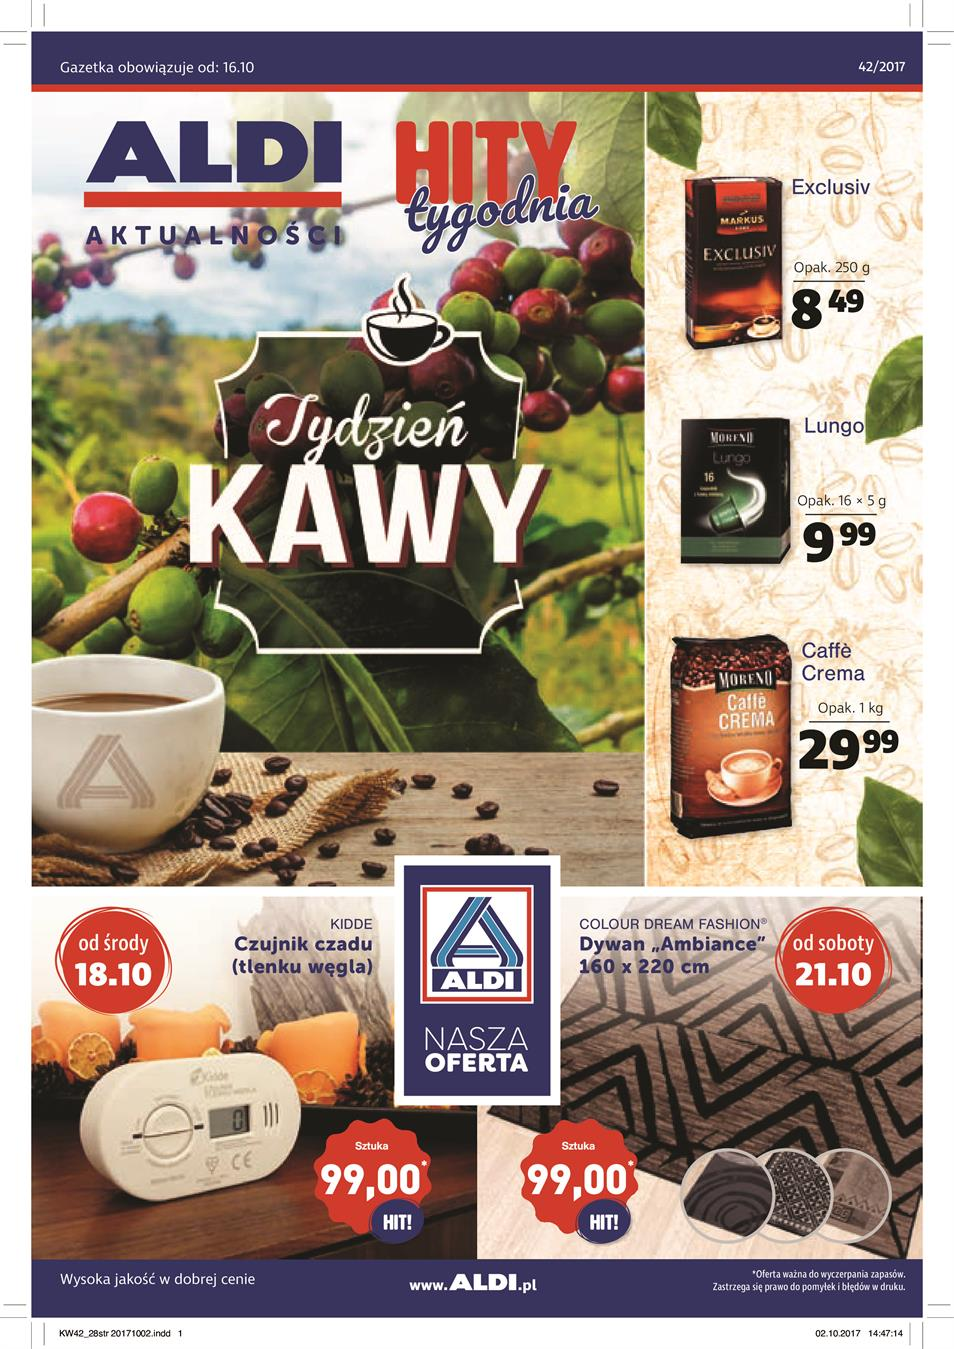 Gazetka ALDI SP Z O O  nr 0 od 2017-10-18 do 2017-10-24